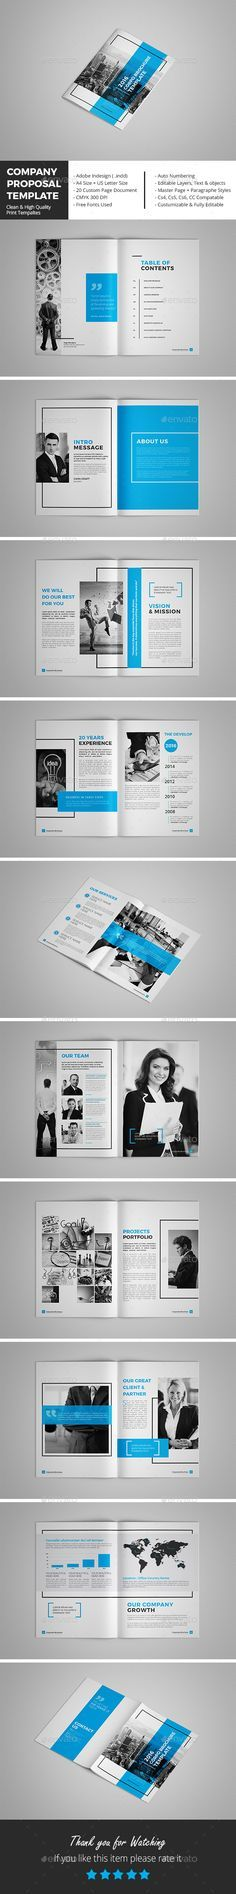 Company Proposal Template Proposal templates, Indesign templates - it services proposal template